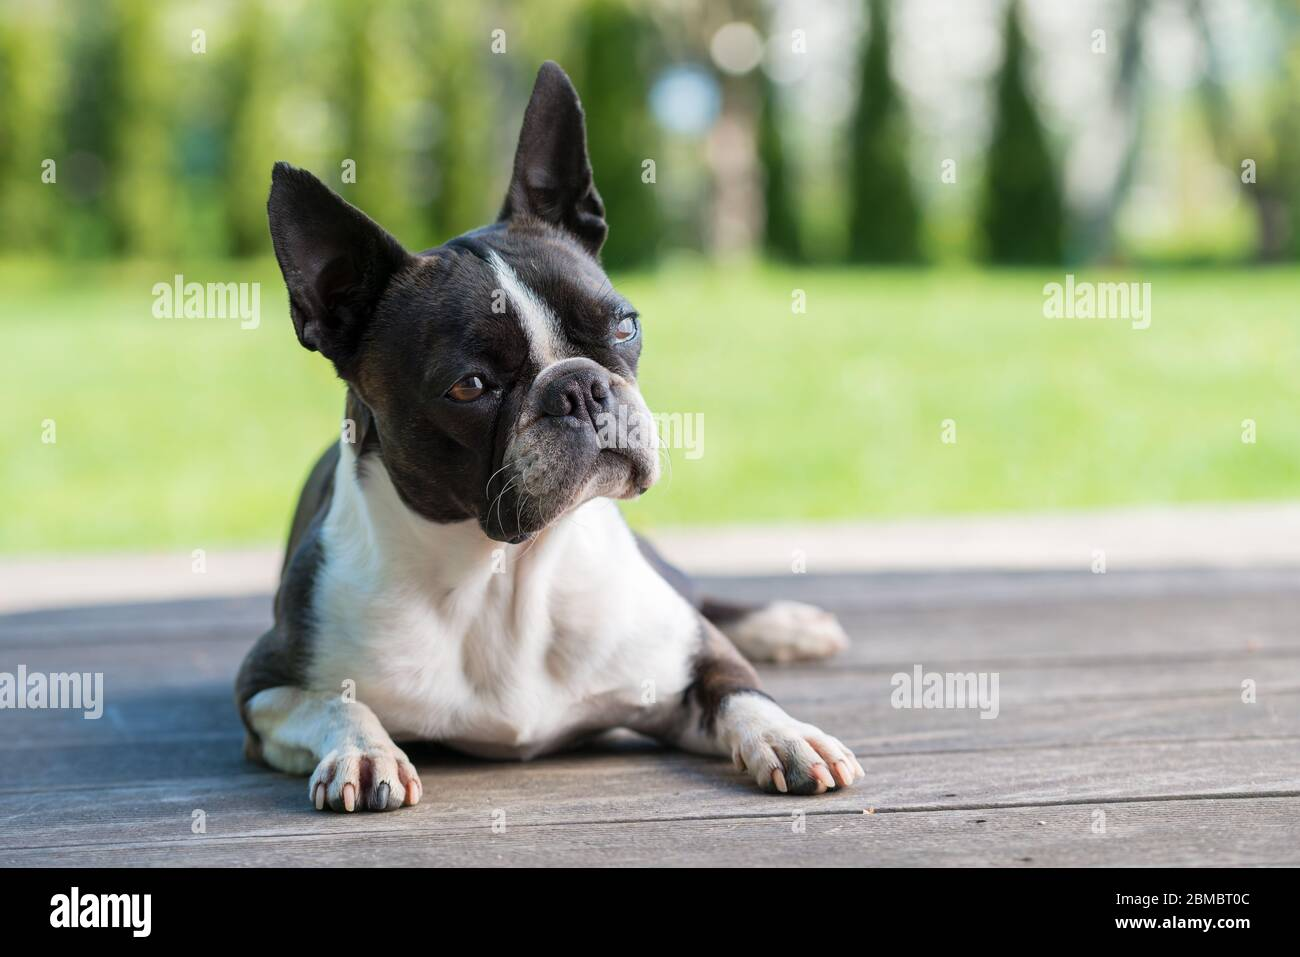 Boston terrier dog on brown terrace  - shallow depth of field Stock Photo